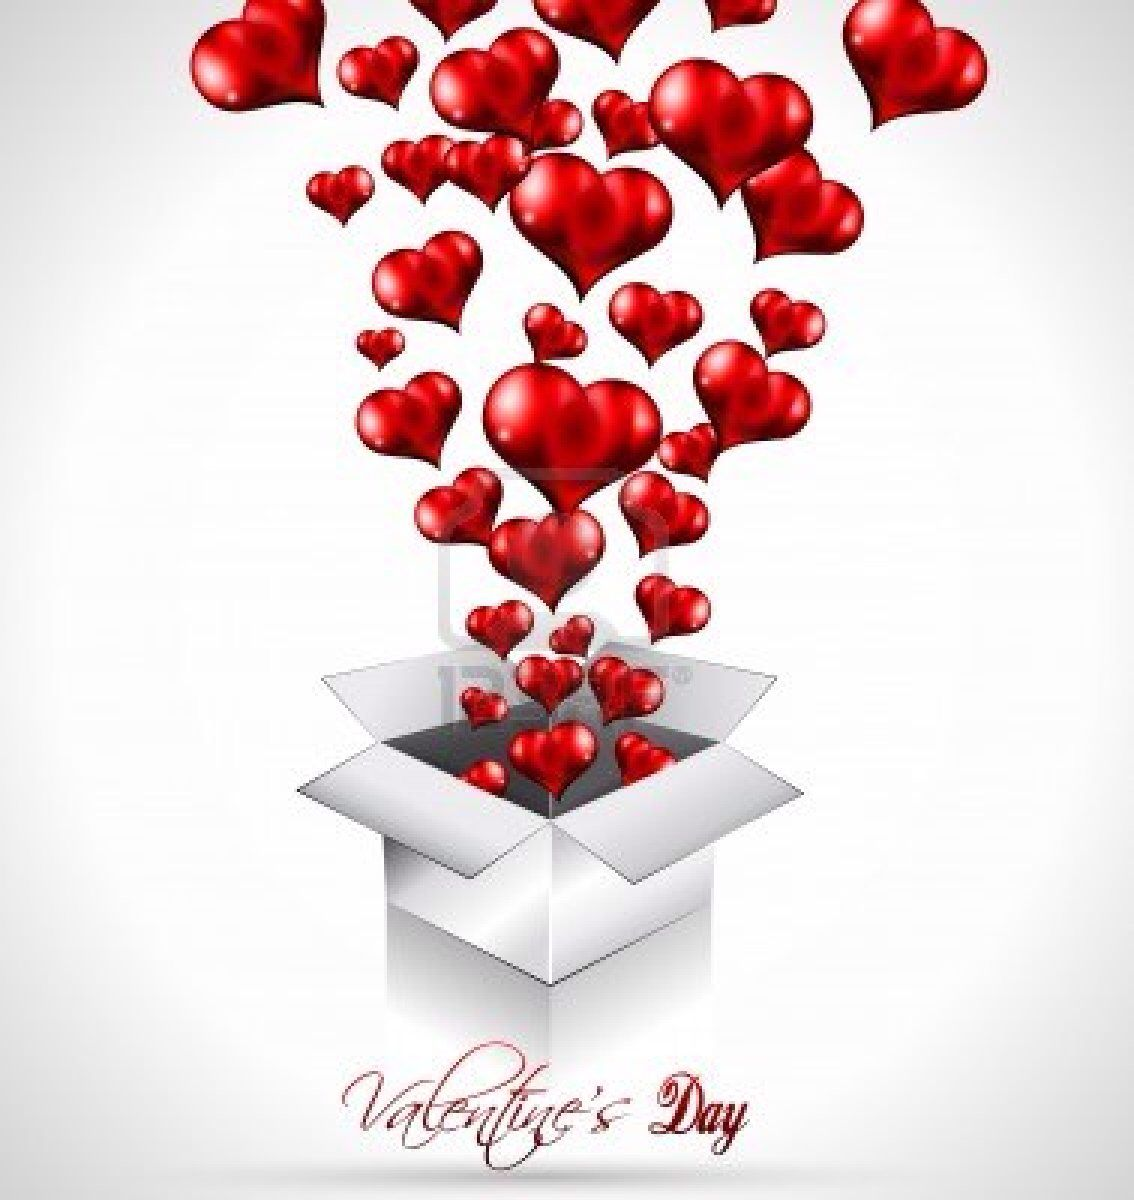 valentines day images cute